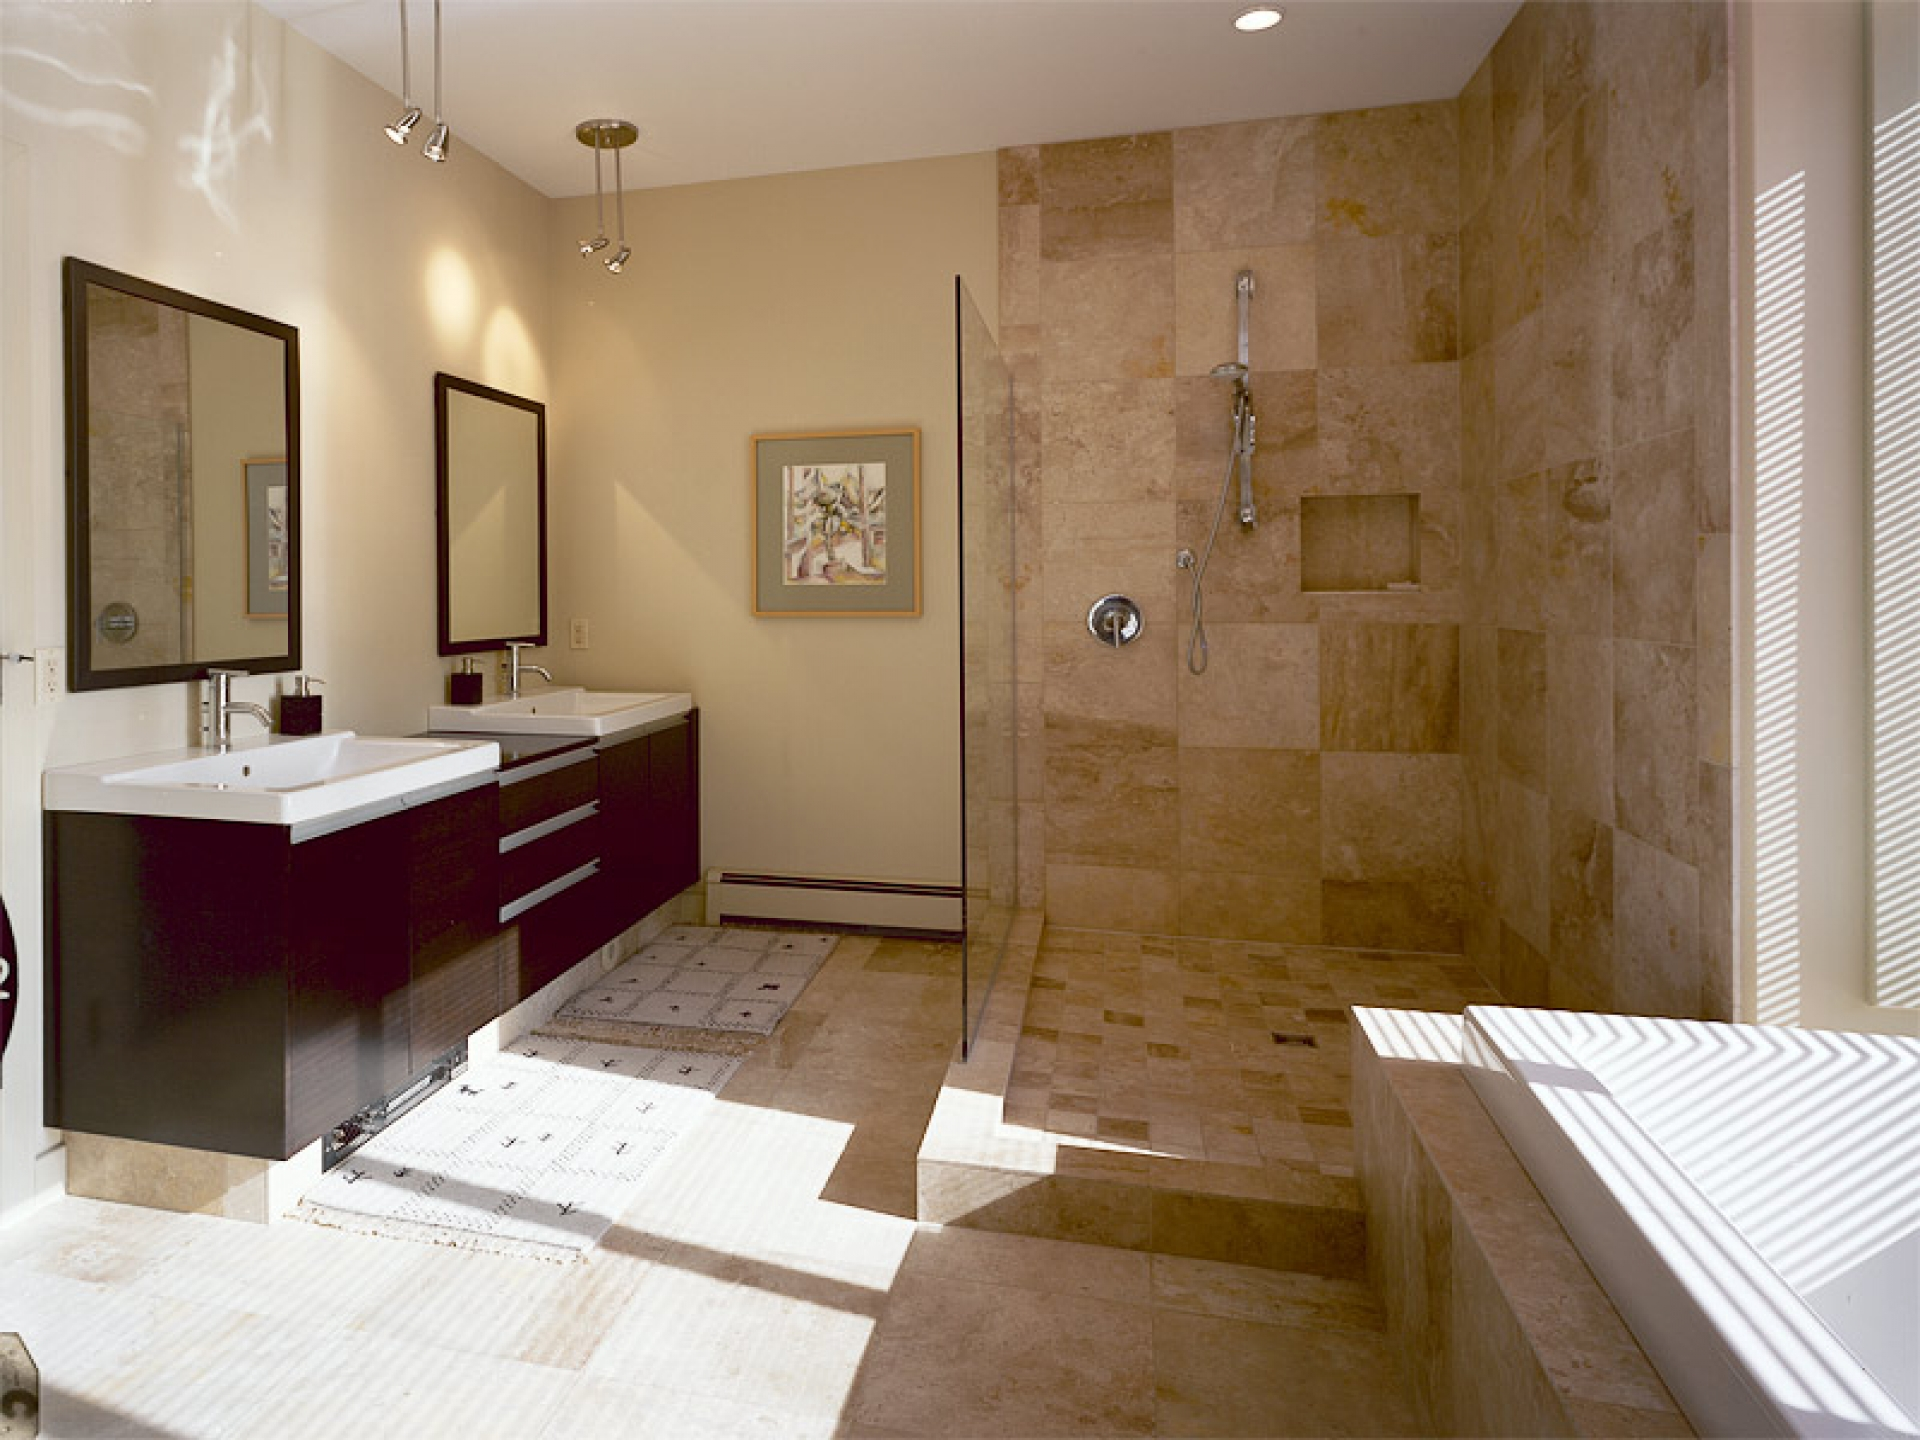 1920x1440-small-ensuite-bathroom-idea